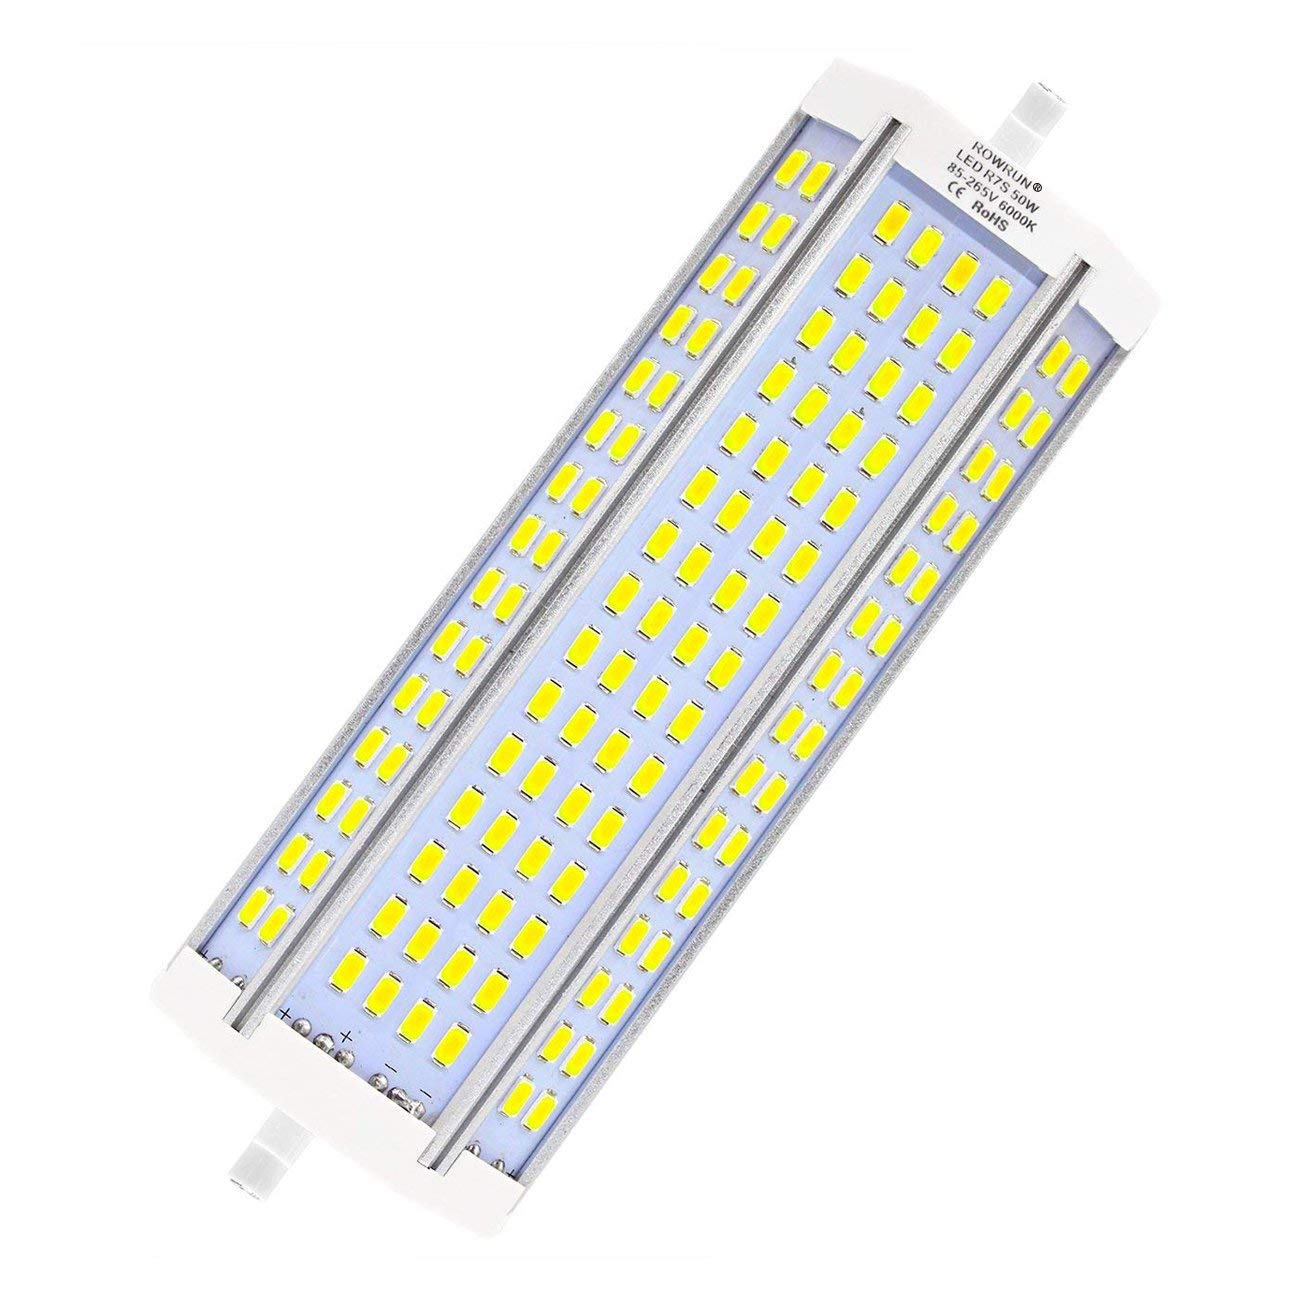 R7S LED 189mm 50W Non Dimmable Daylight White 6000K Type J Light Bulb J189 500W Double Ended Halogen Bulb Replacement 4700LM AC85-265V by Rowrun